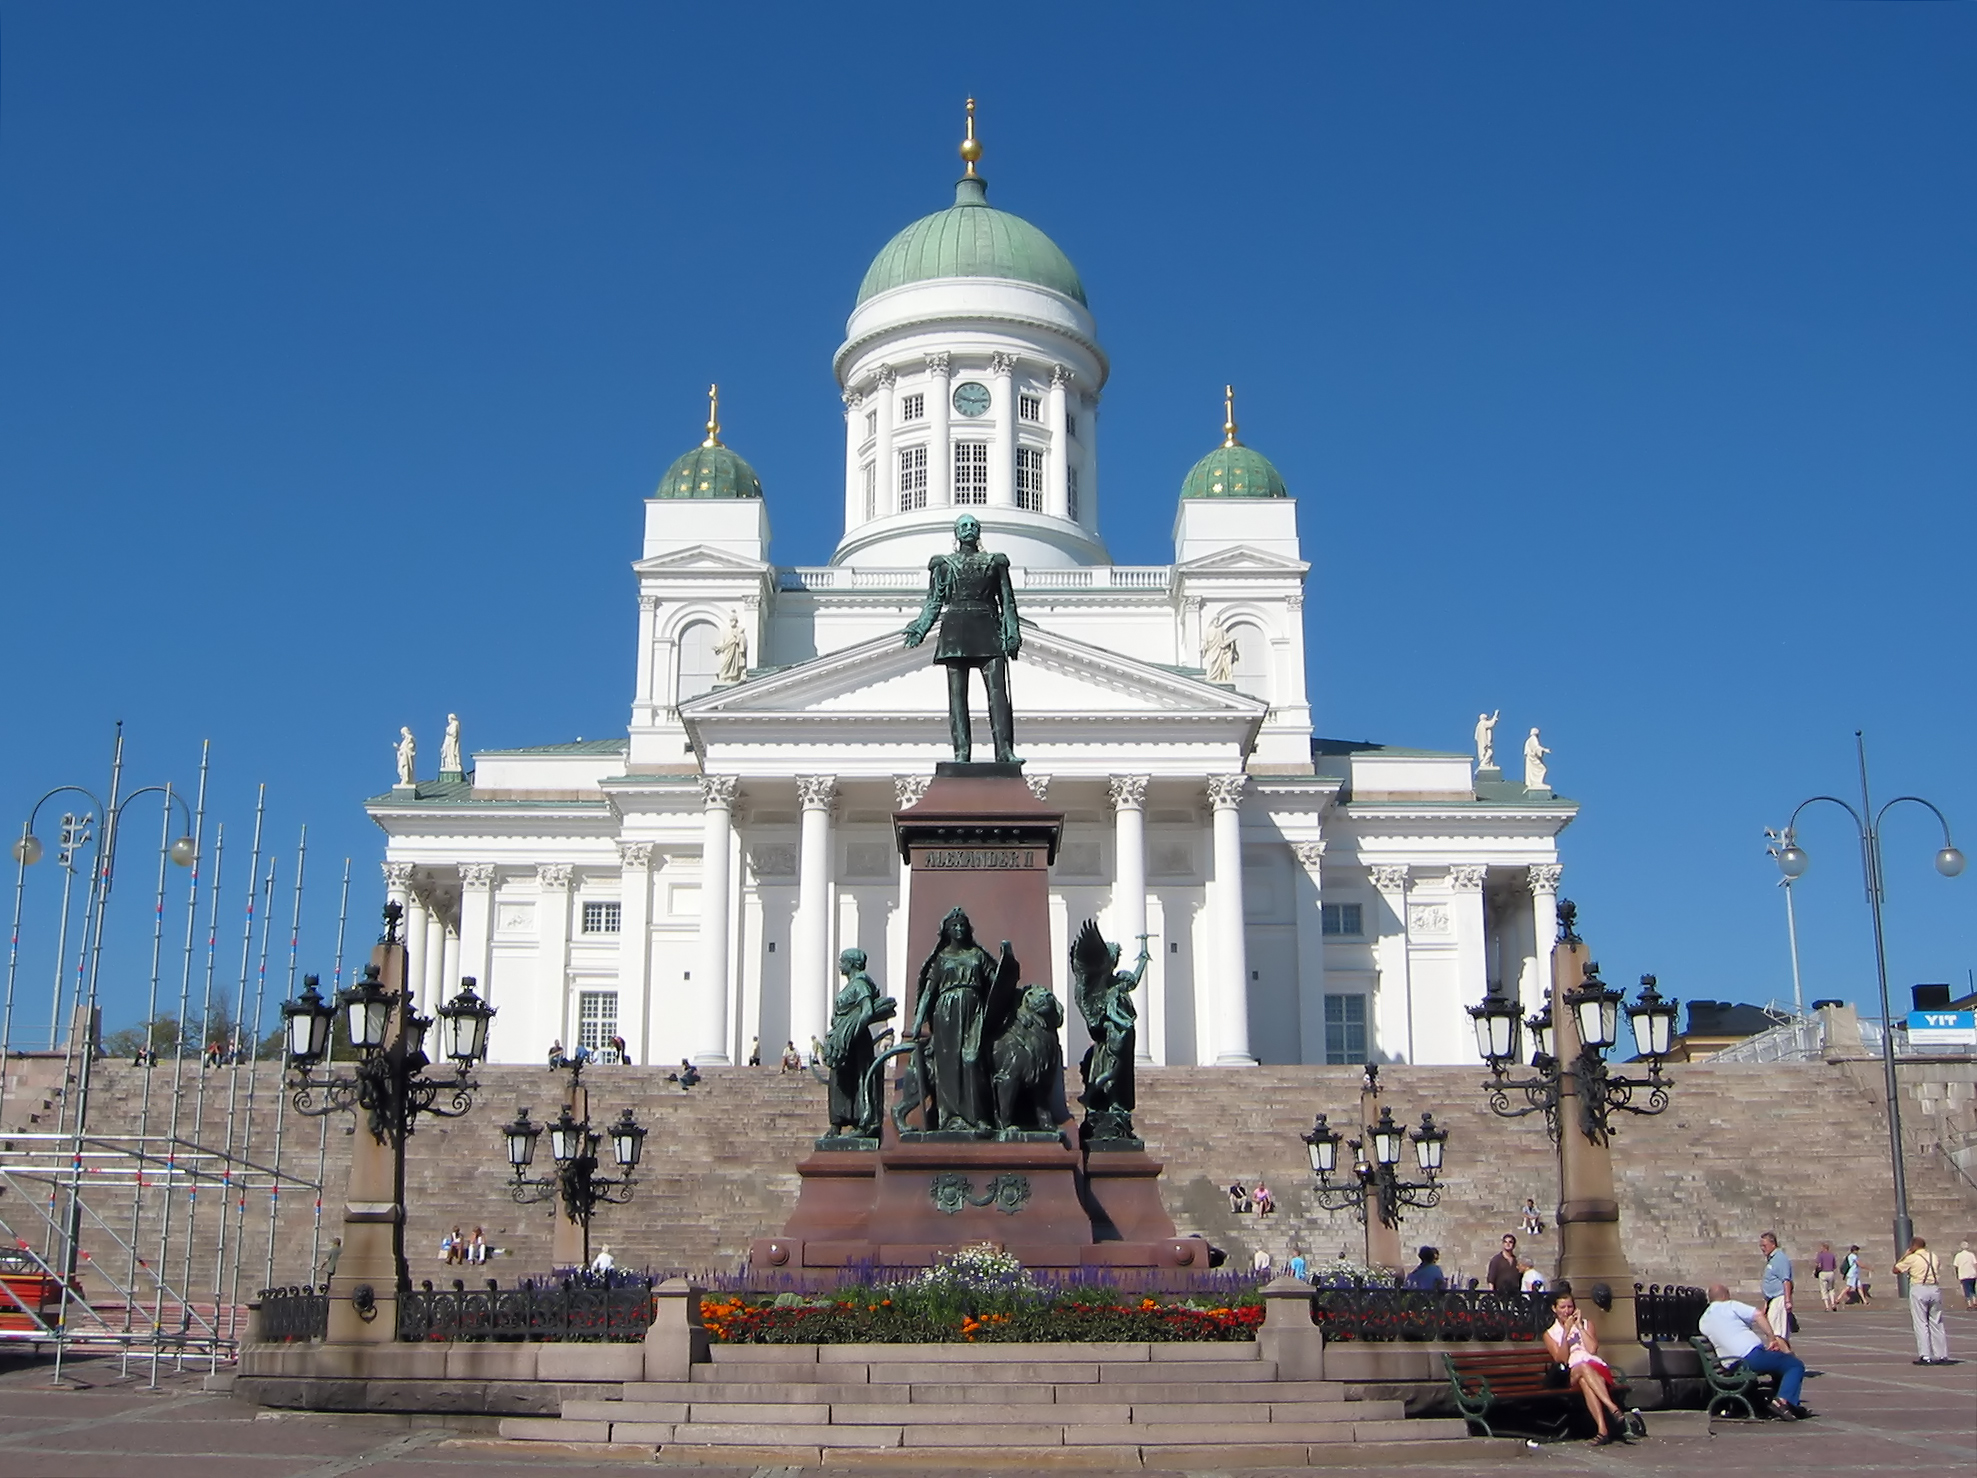 File:Helsinki Lutheran Chathedral and the statue.jpg - Wikimedia Commons